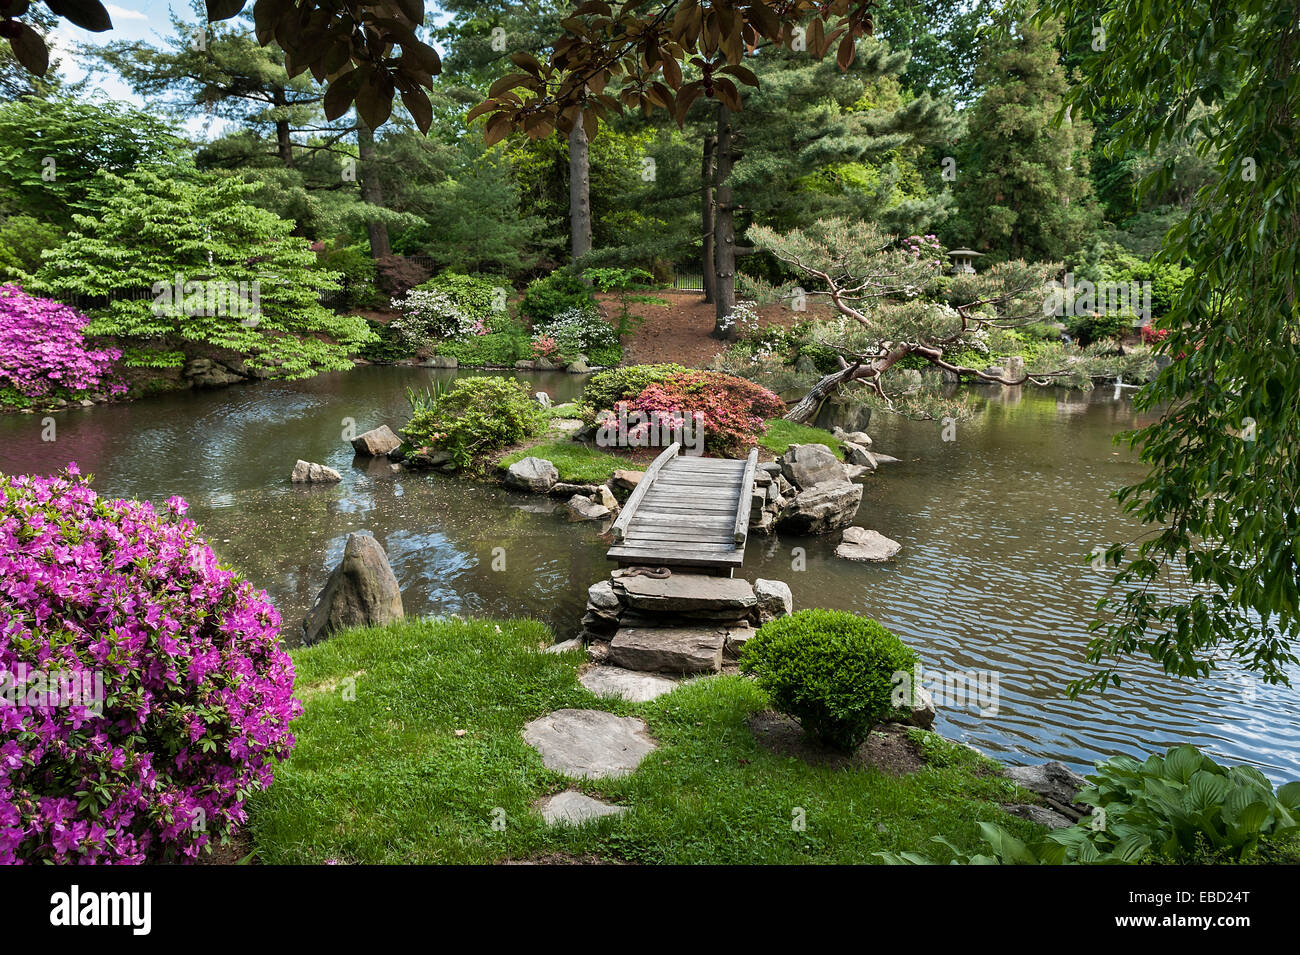 Japanese Garden Philadelphia USA Stock Photo Royalty Free Image 75889768 - Alamy